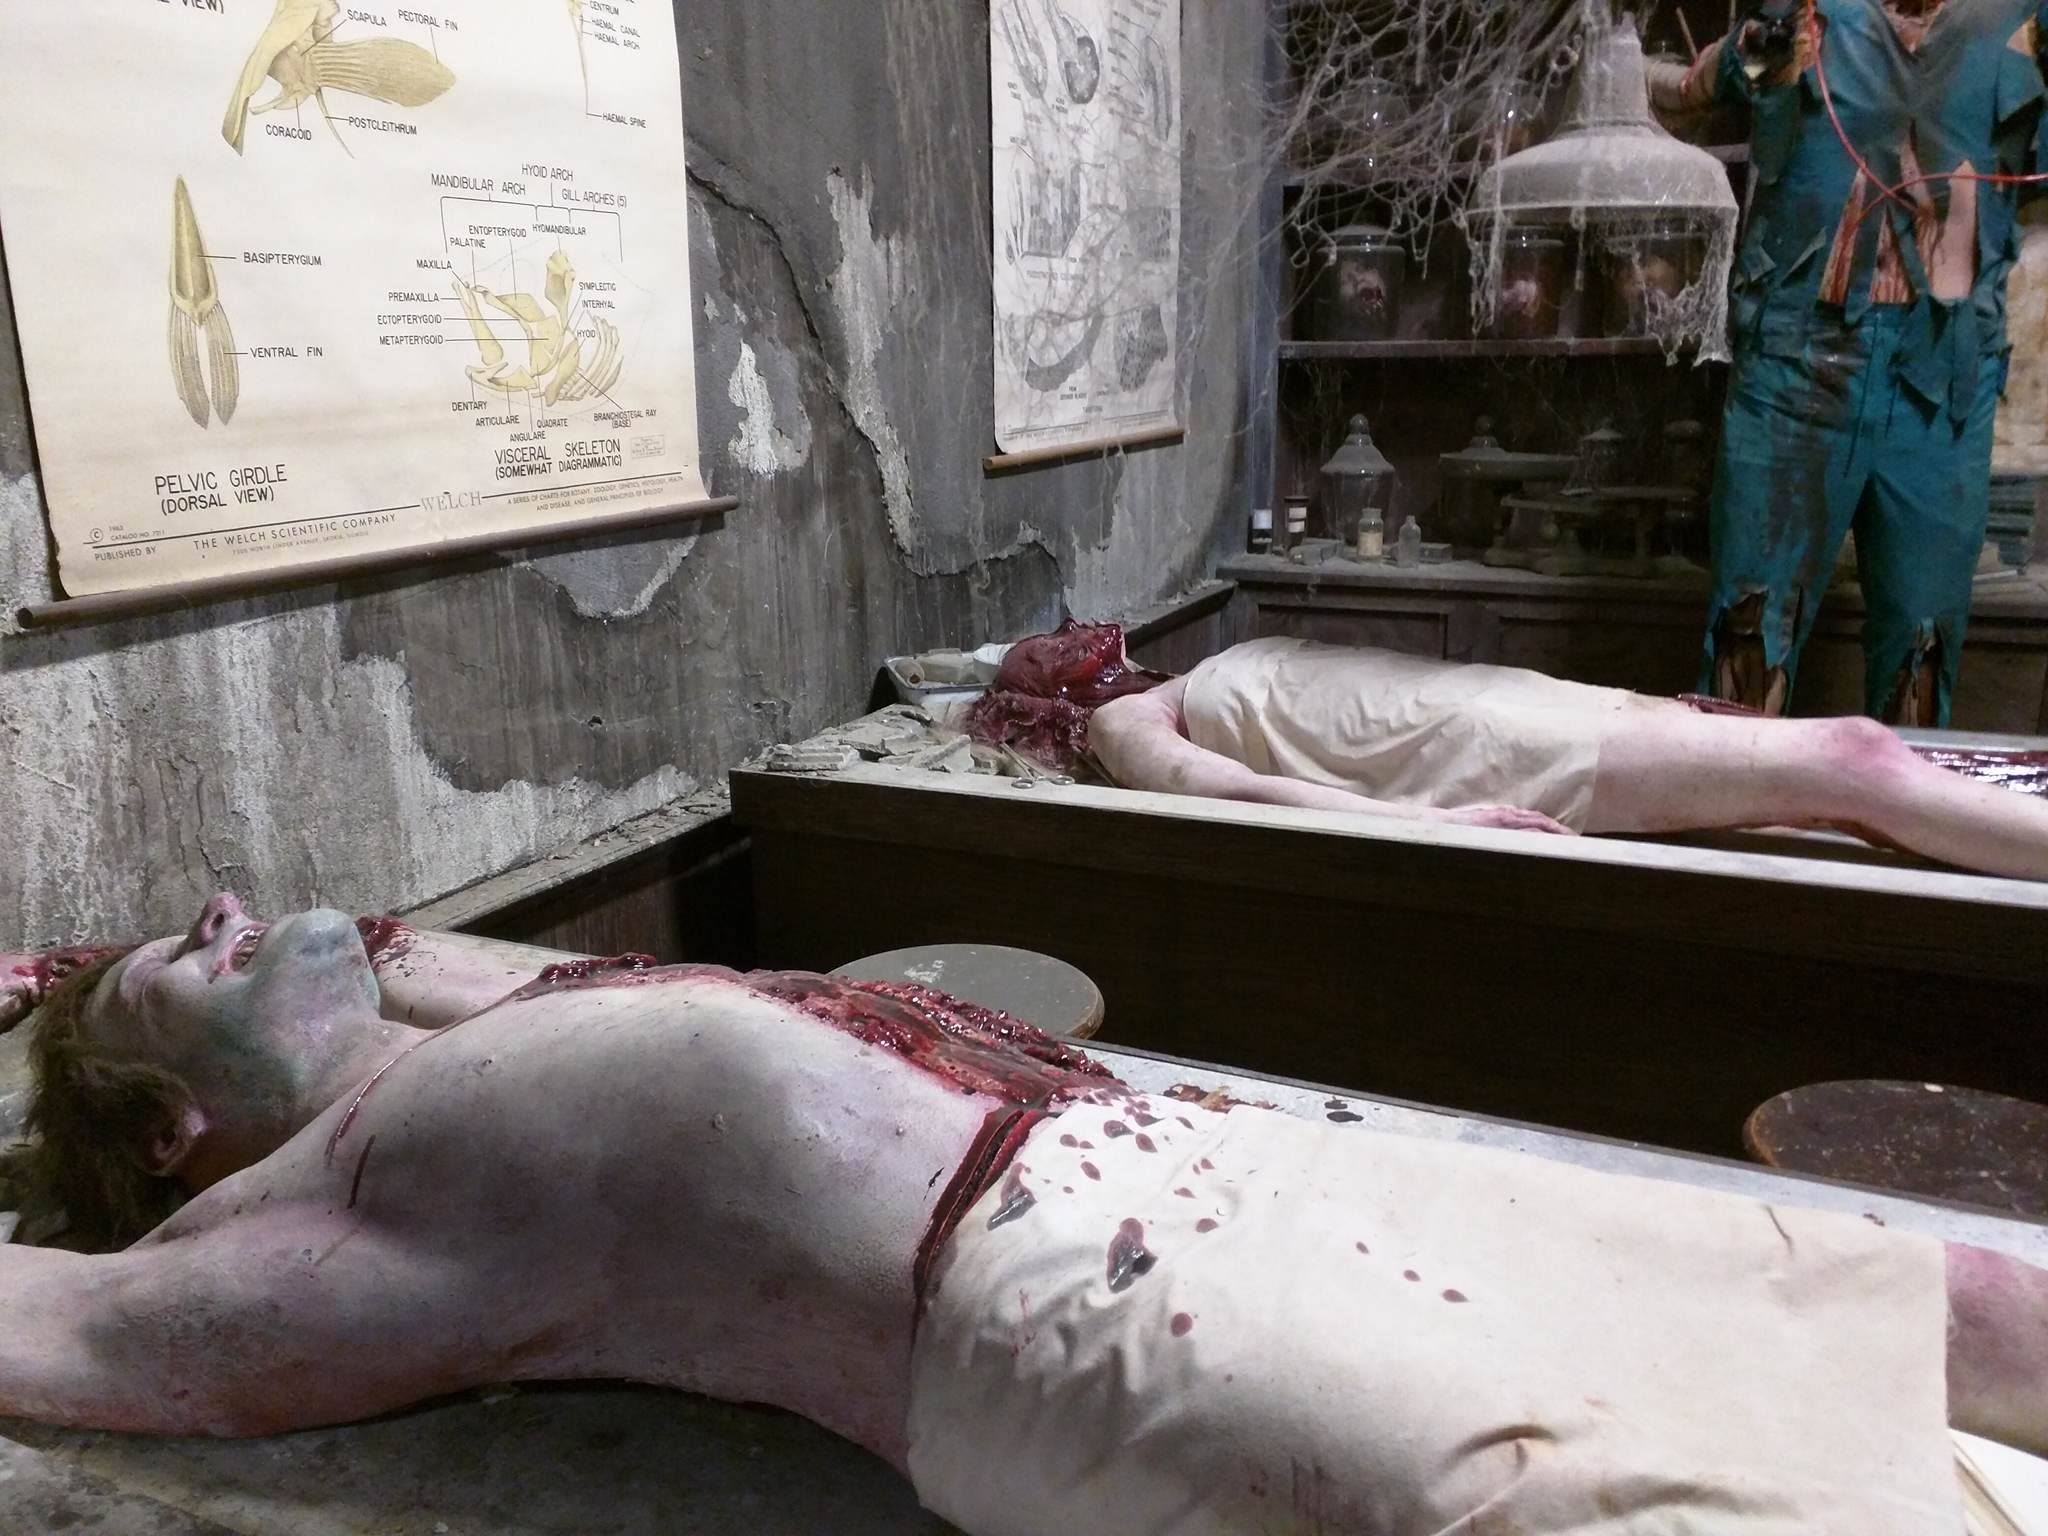 The Dent Schoolhouse {WARNING: Graphic Images}